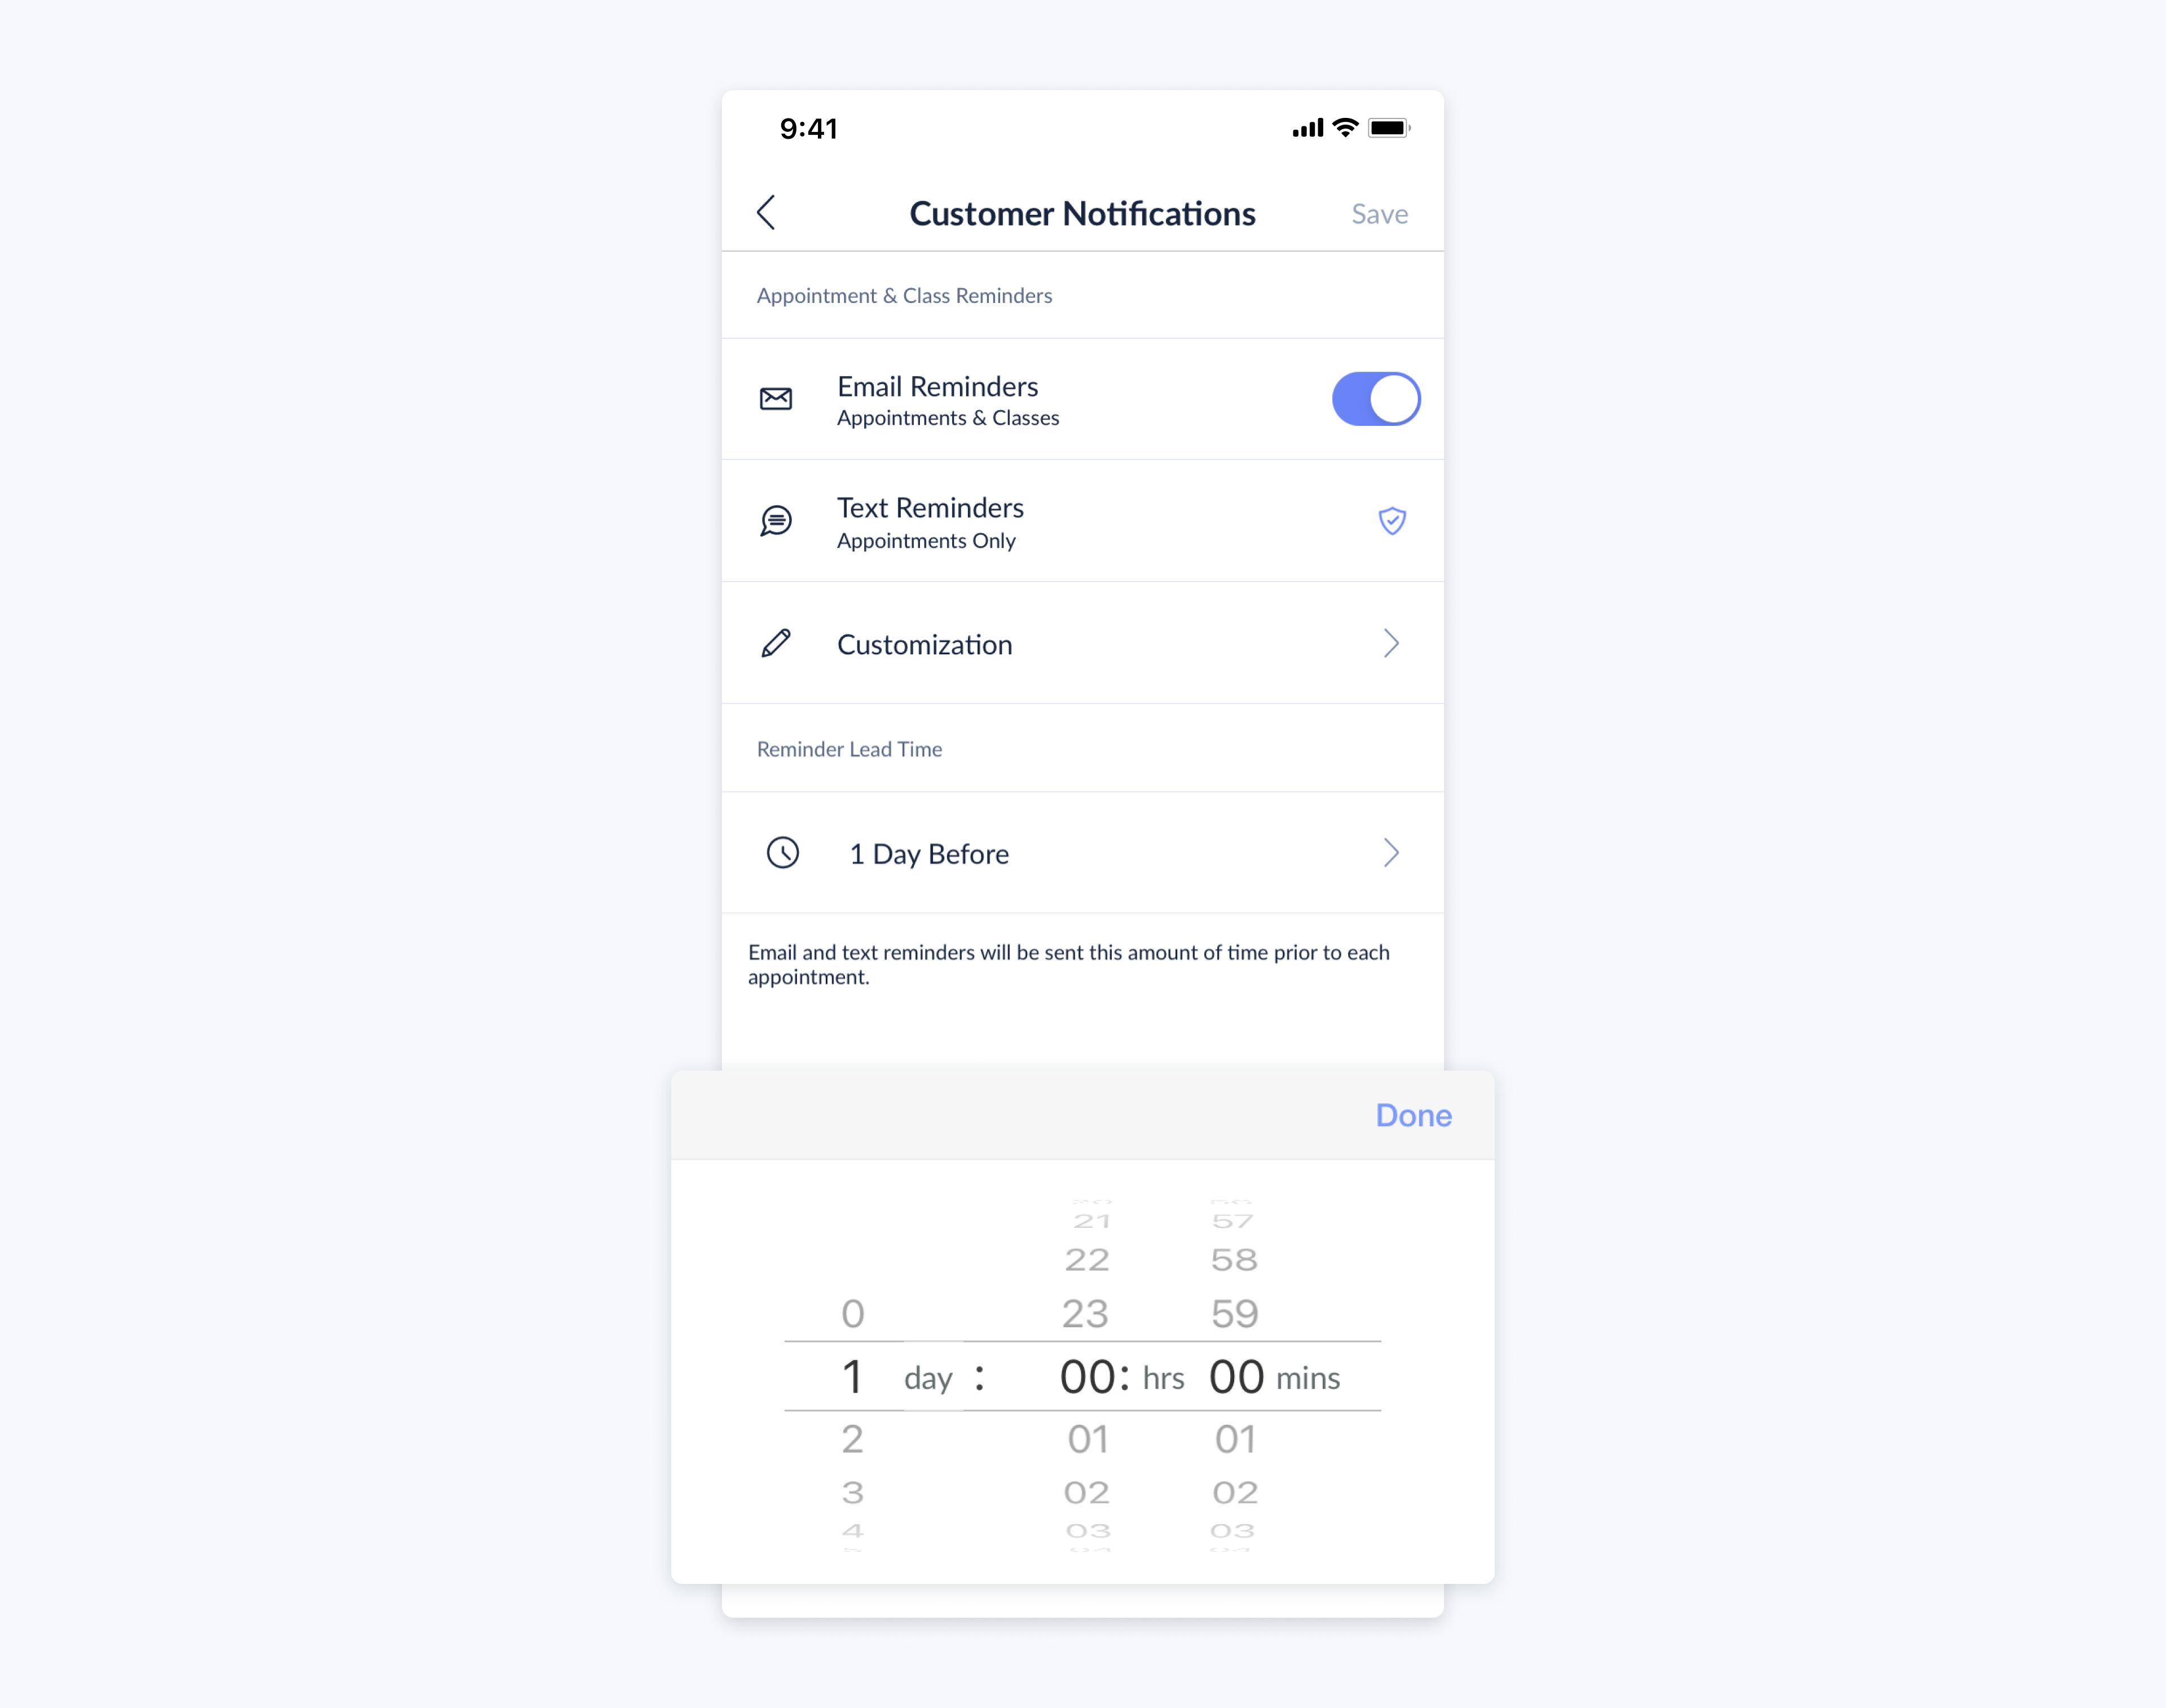 lead time for customers notifications on setmore mobile app